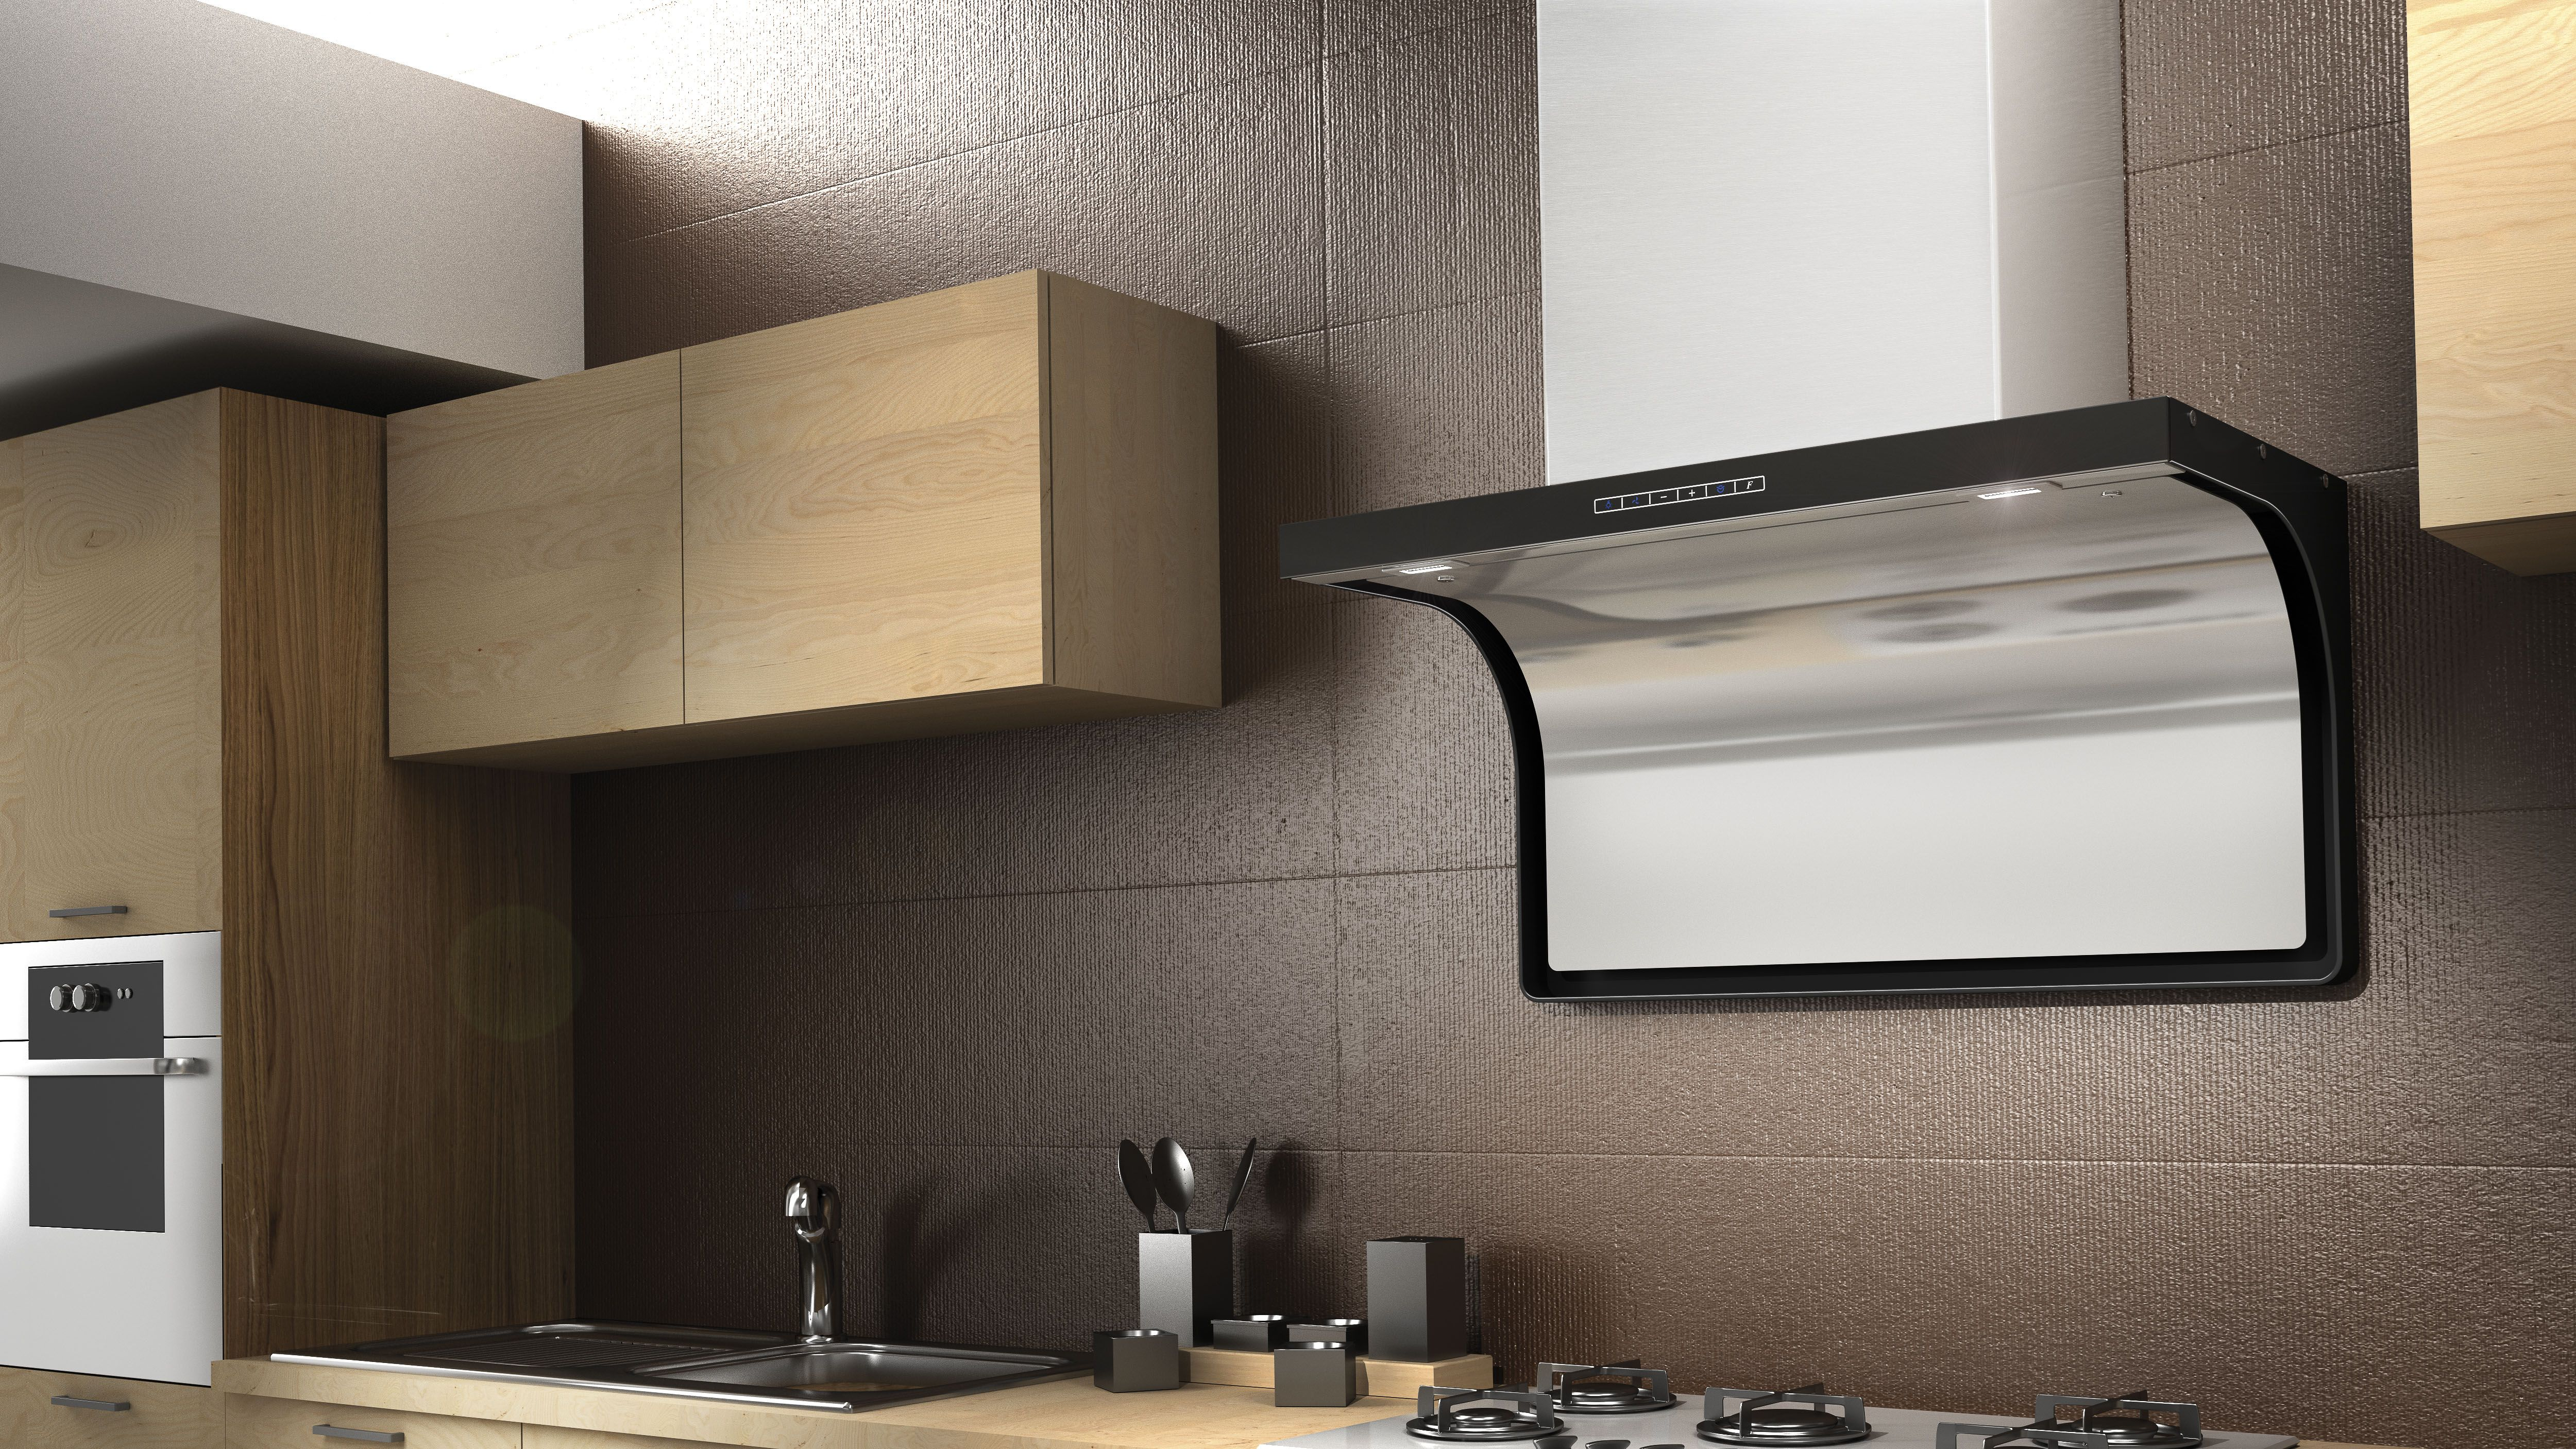 F135 Led house airforce cooker hoods hauben hotte